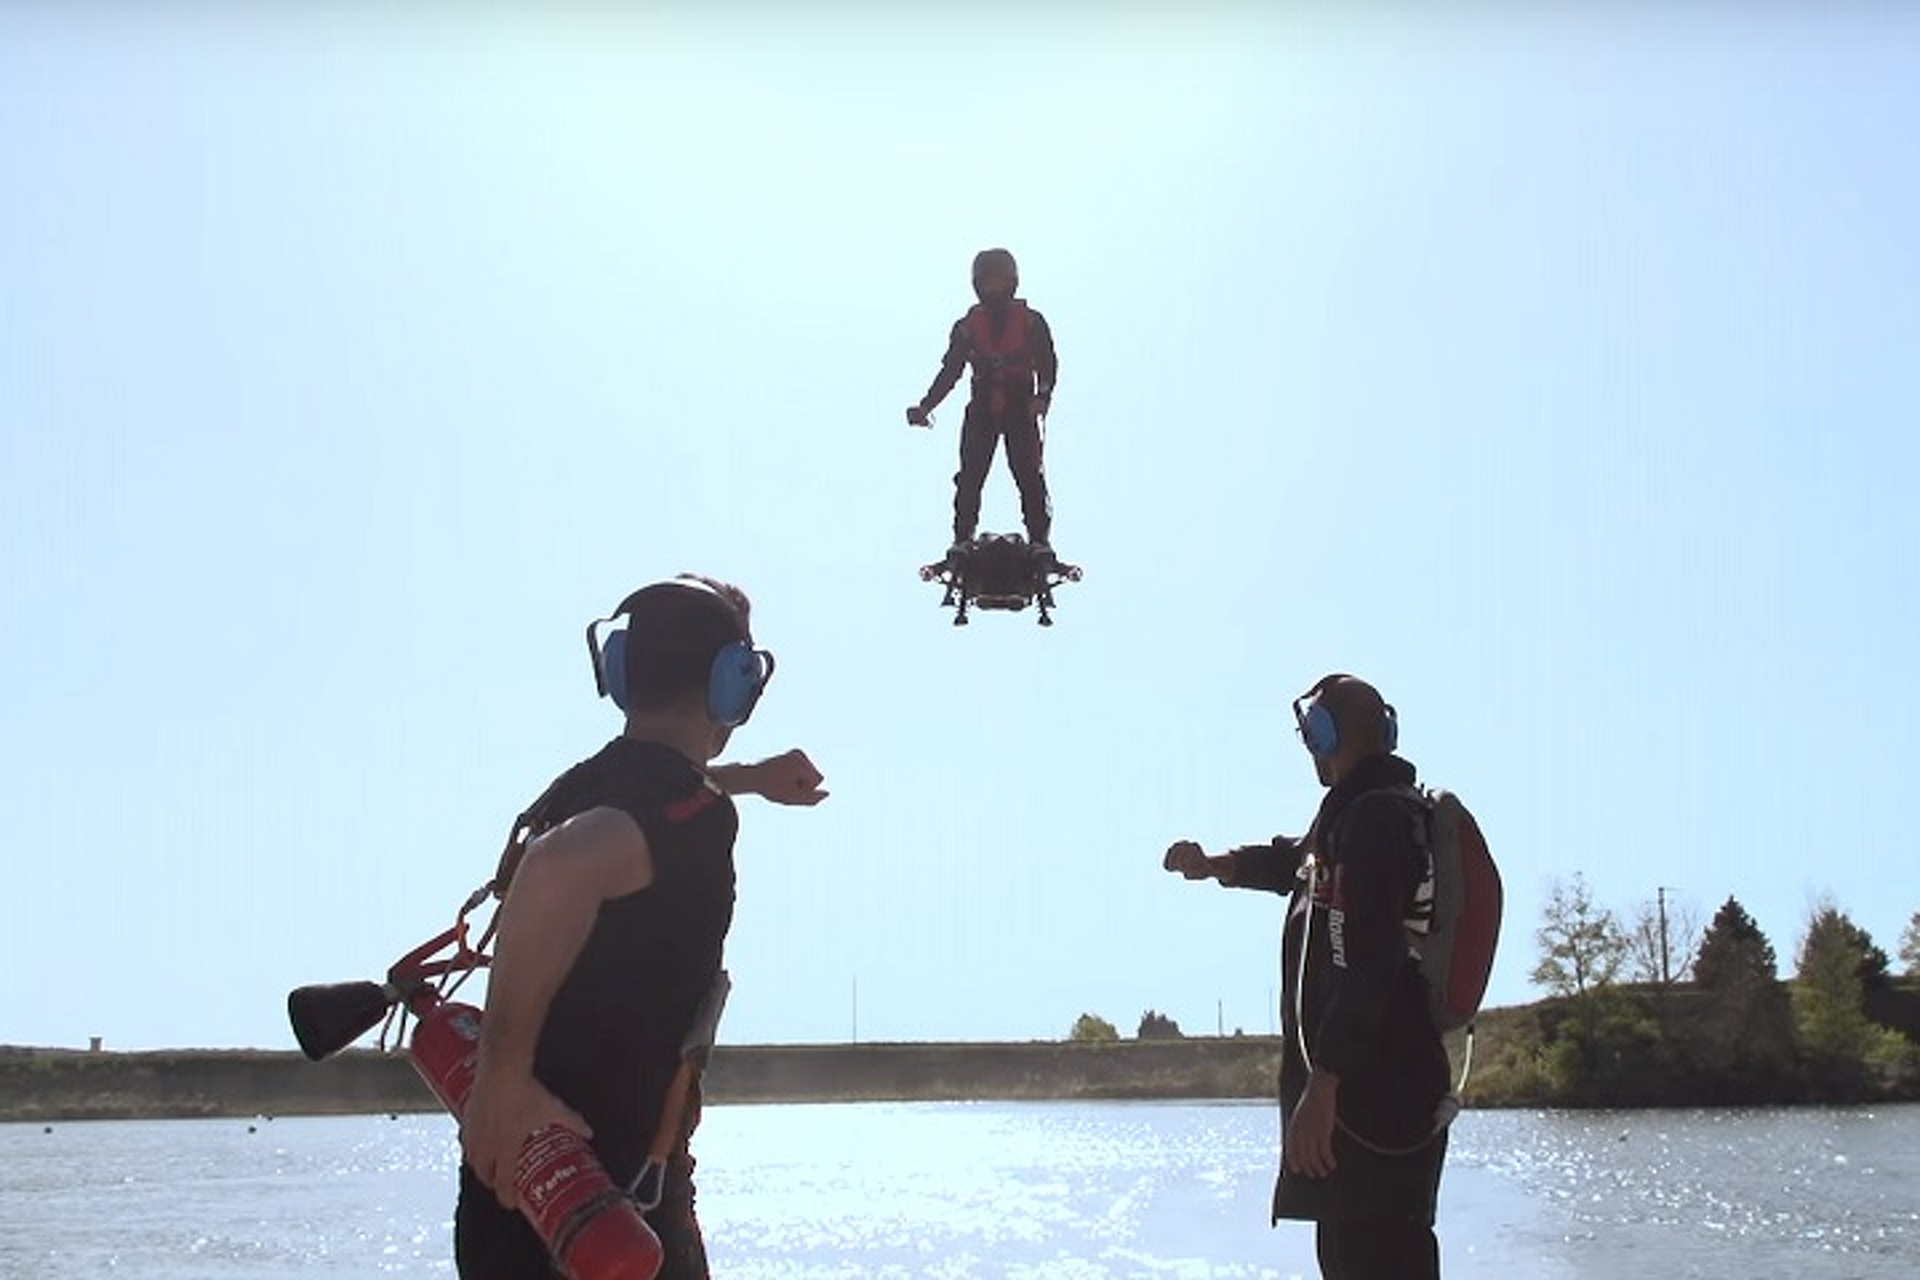 Watch A Real Hoverboard Take to the Air